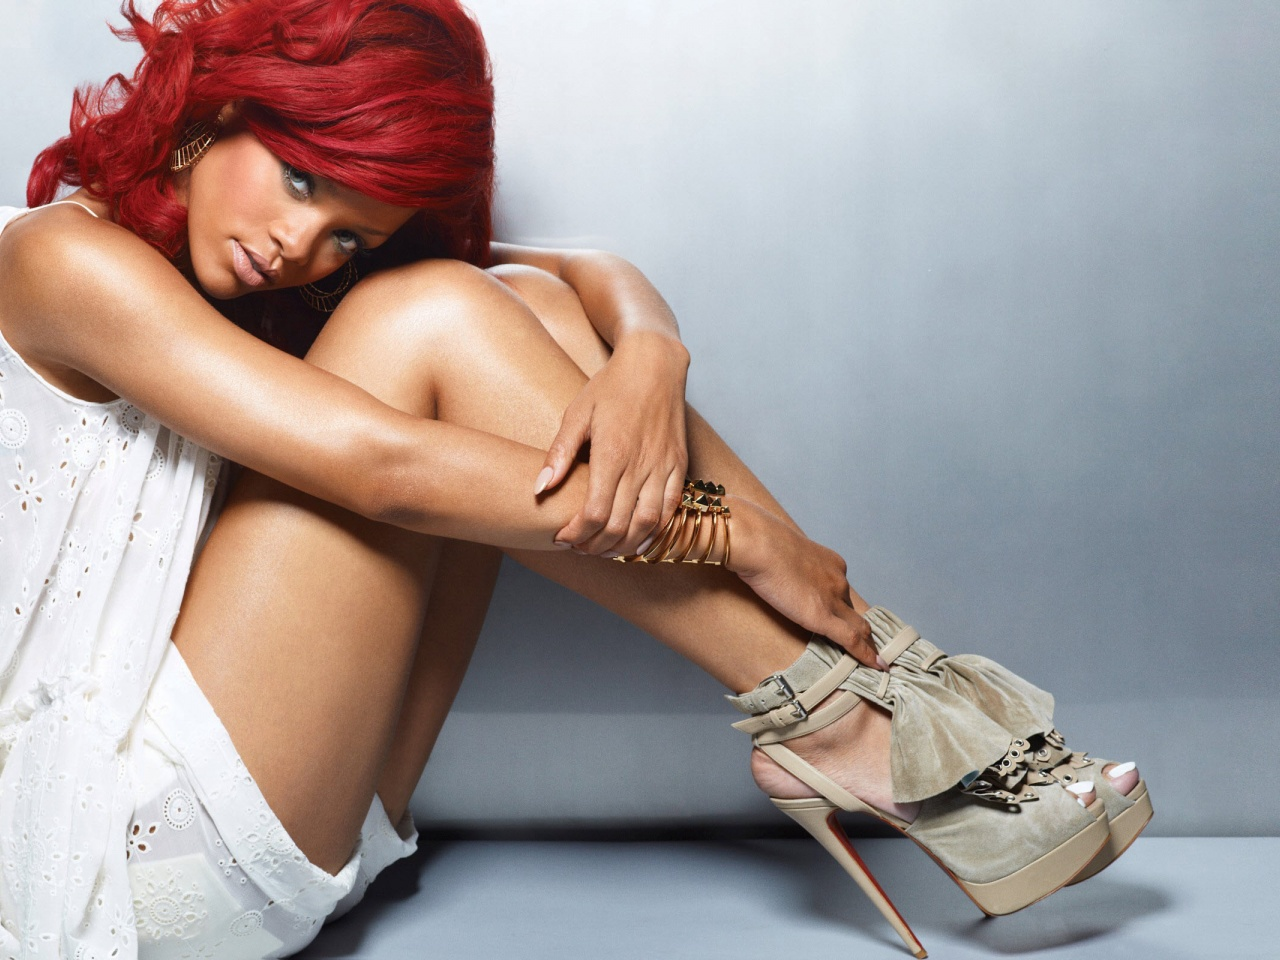 rihanna singer hot images,pictures,wallpapers 2011 | hot celebrities